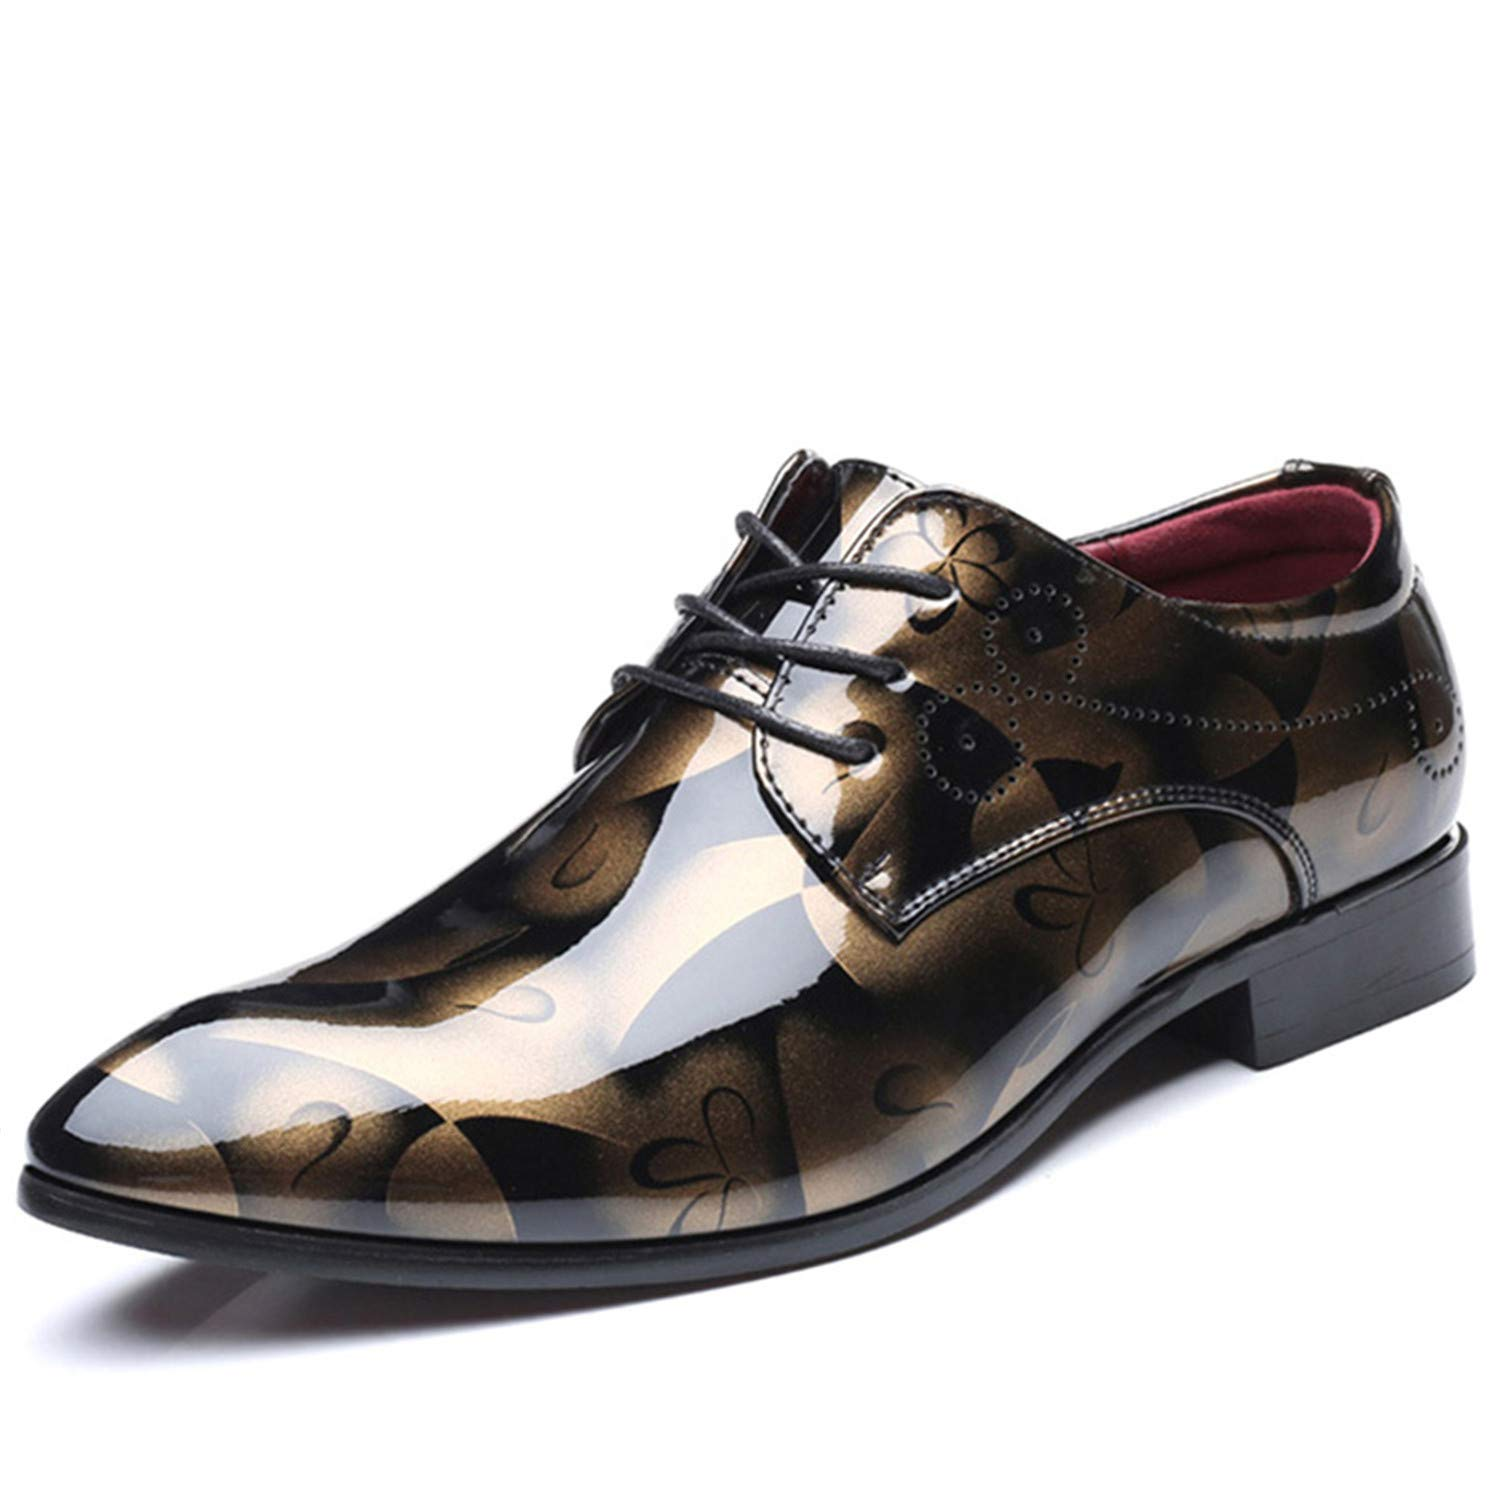 Men's/Women's Oxford Shoes for Men Dress Shoes Shoes Shoes Men Formal Shoes Pointed Toe Business Wedding Plus Size 49 50 RME-308 Complete specification range High quality and economy Various HV5766 c81fbf